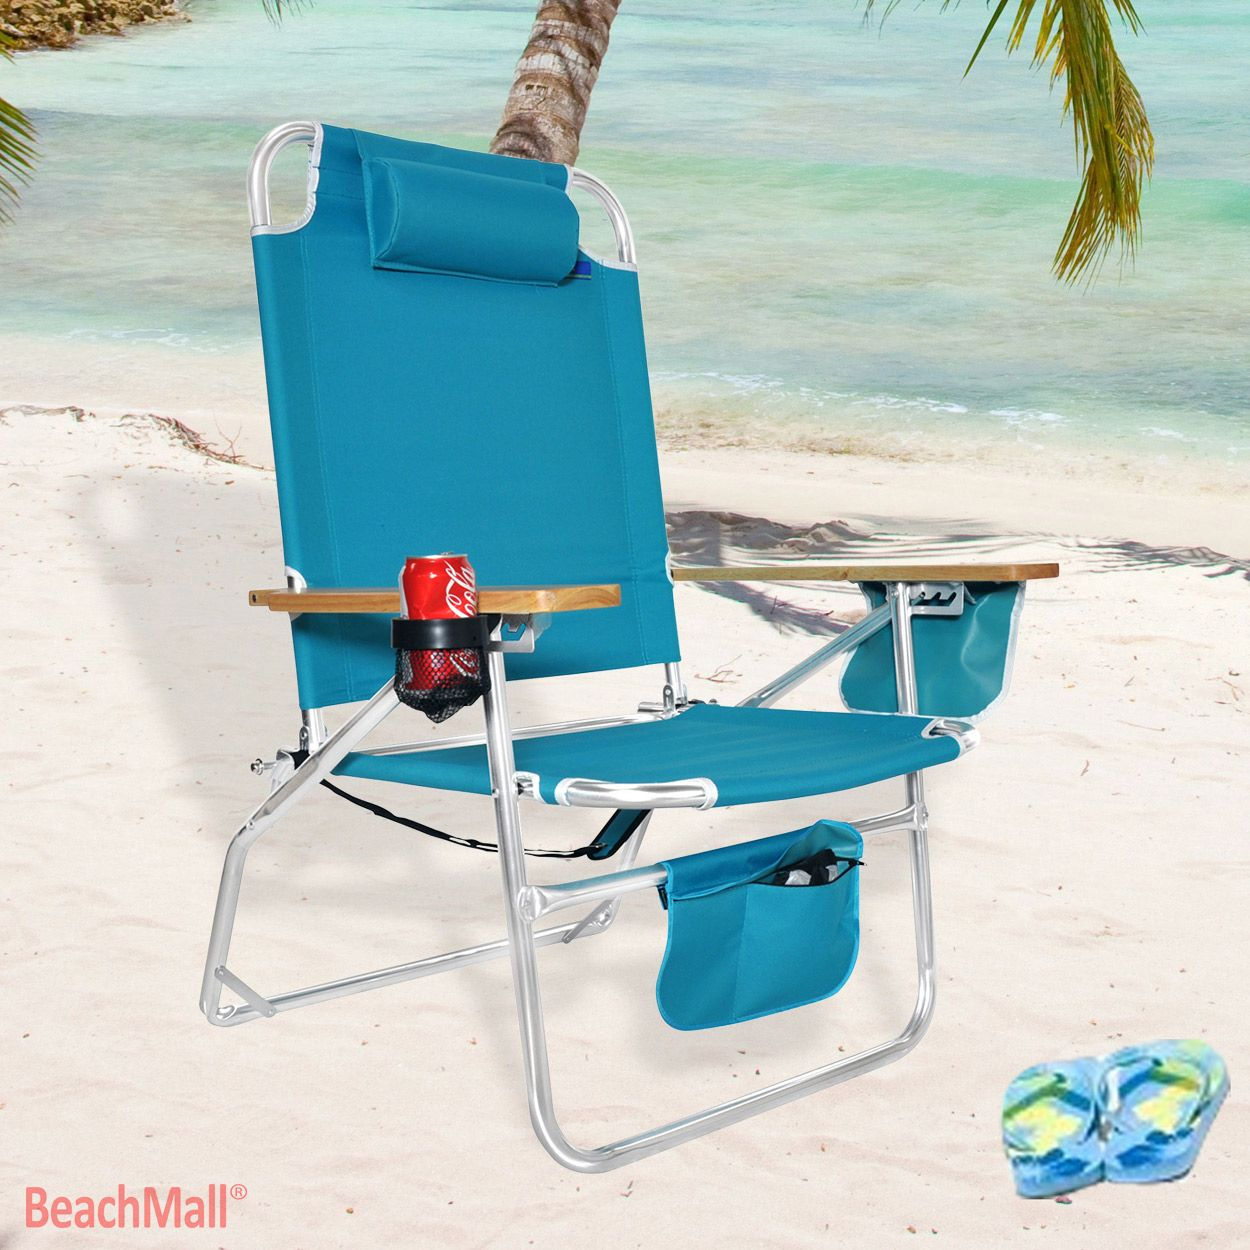 Best Xl Aluminum Beach Chair For Big Tall 149 95 Beachmall 400 x 300